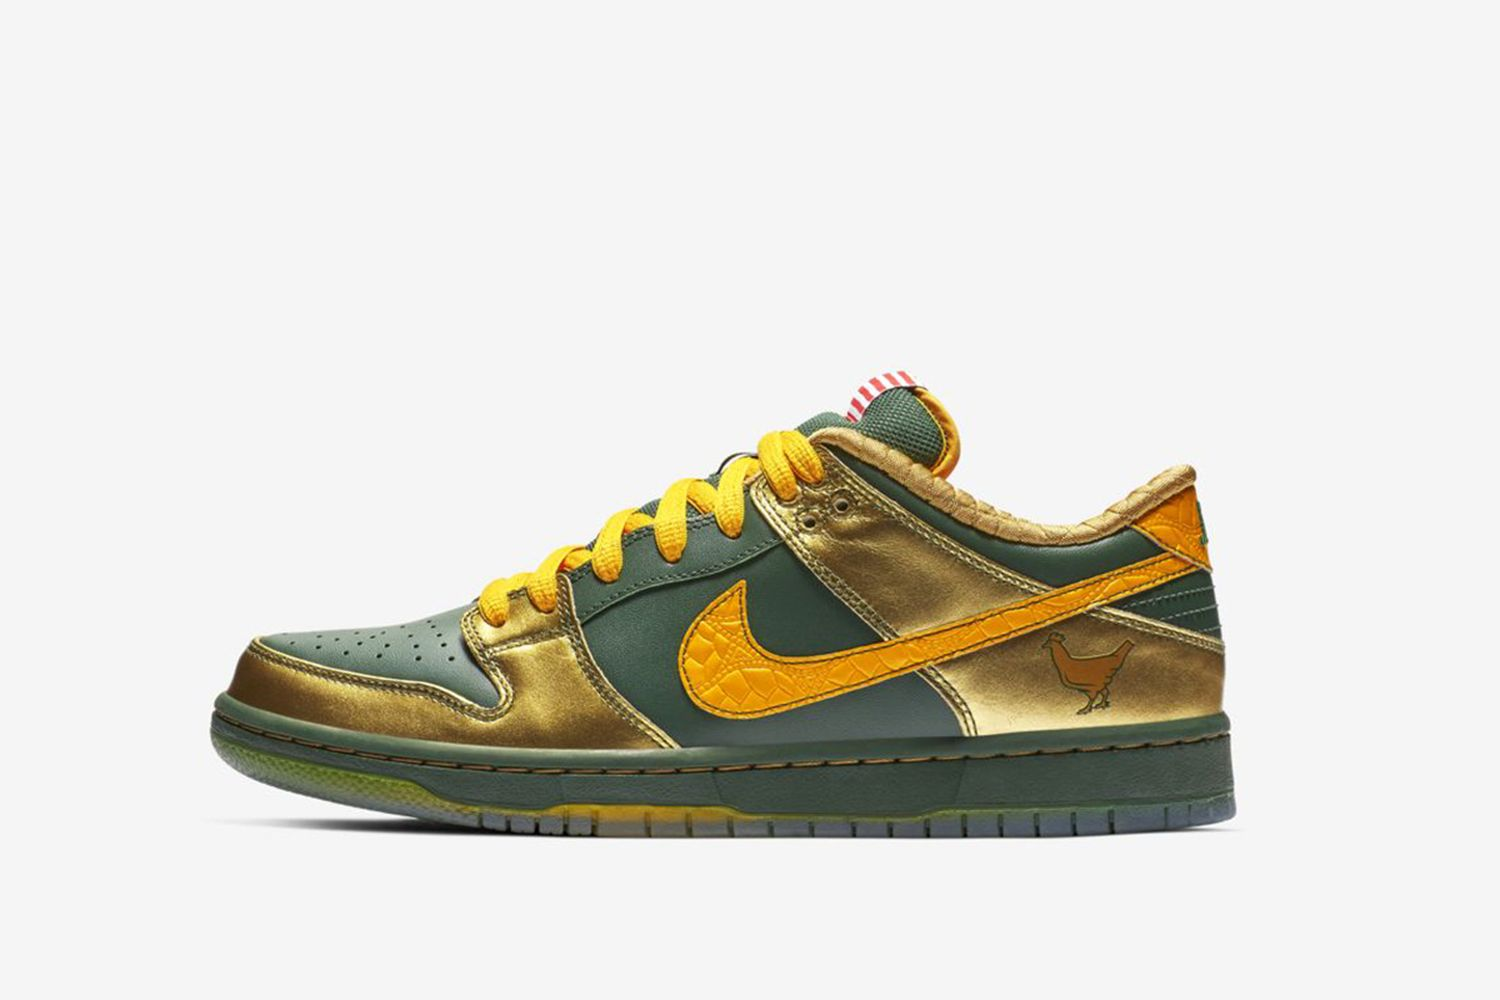 SB Dunk Low Doernbecher